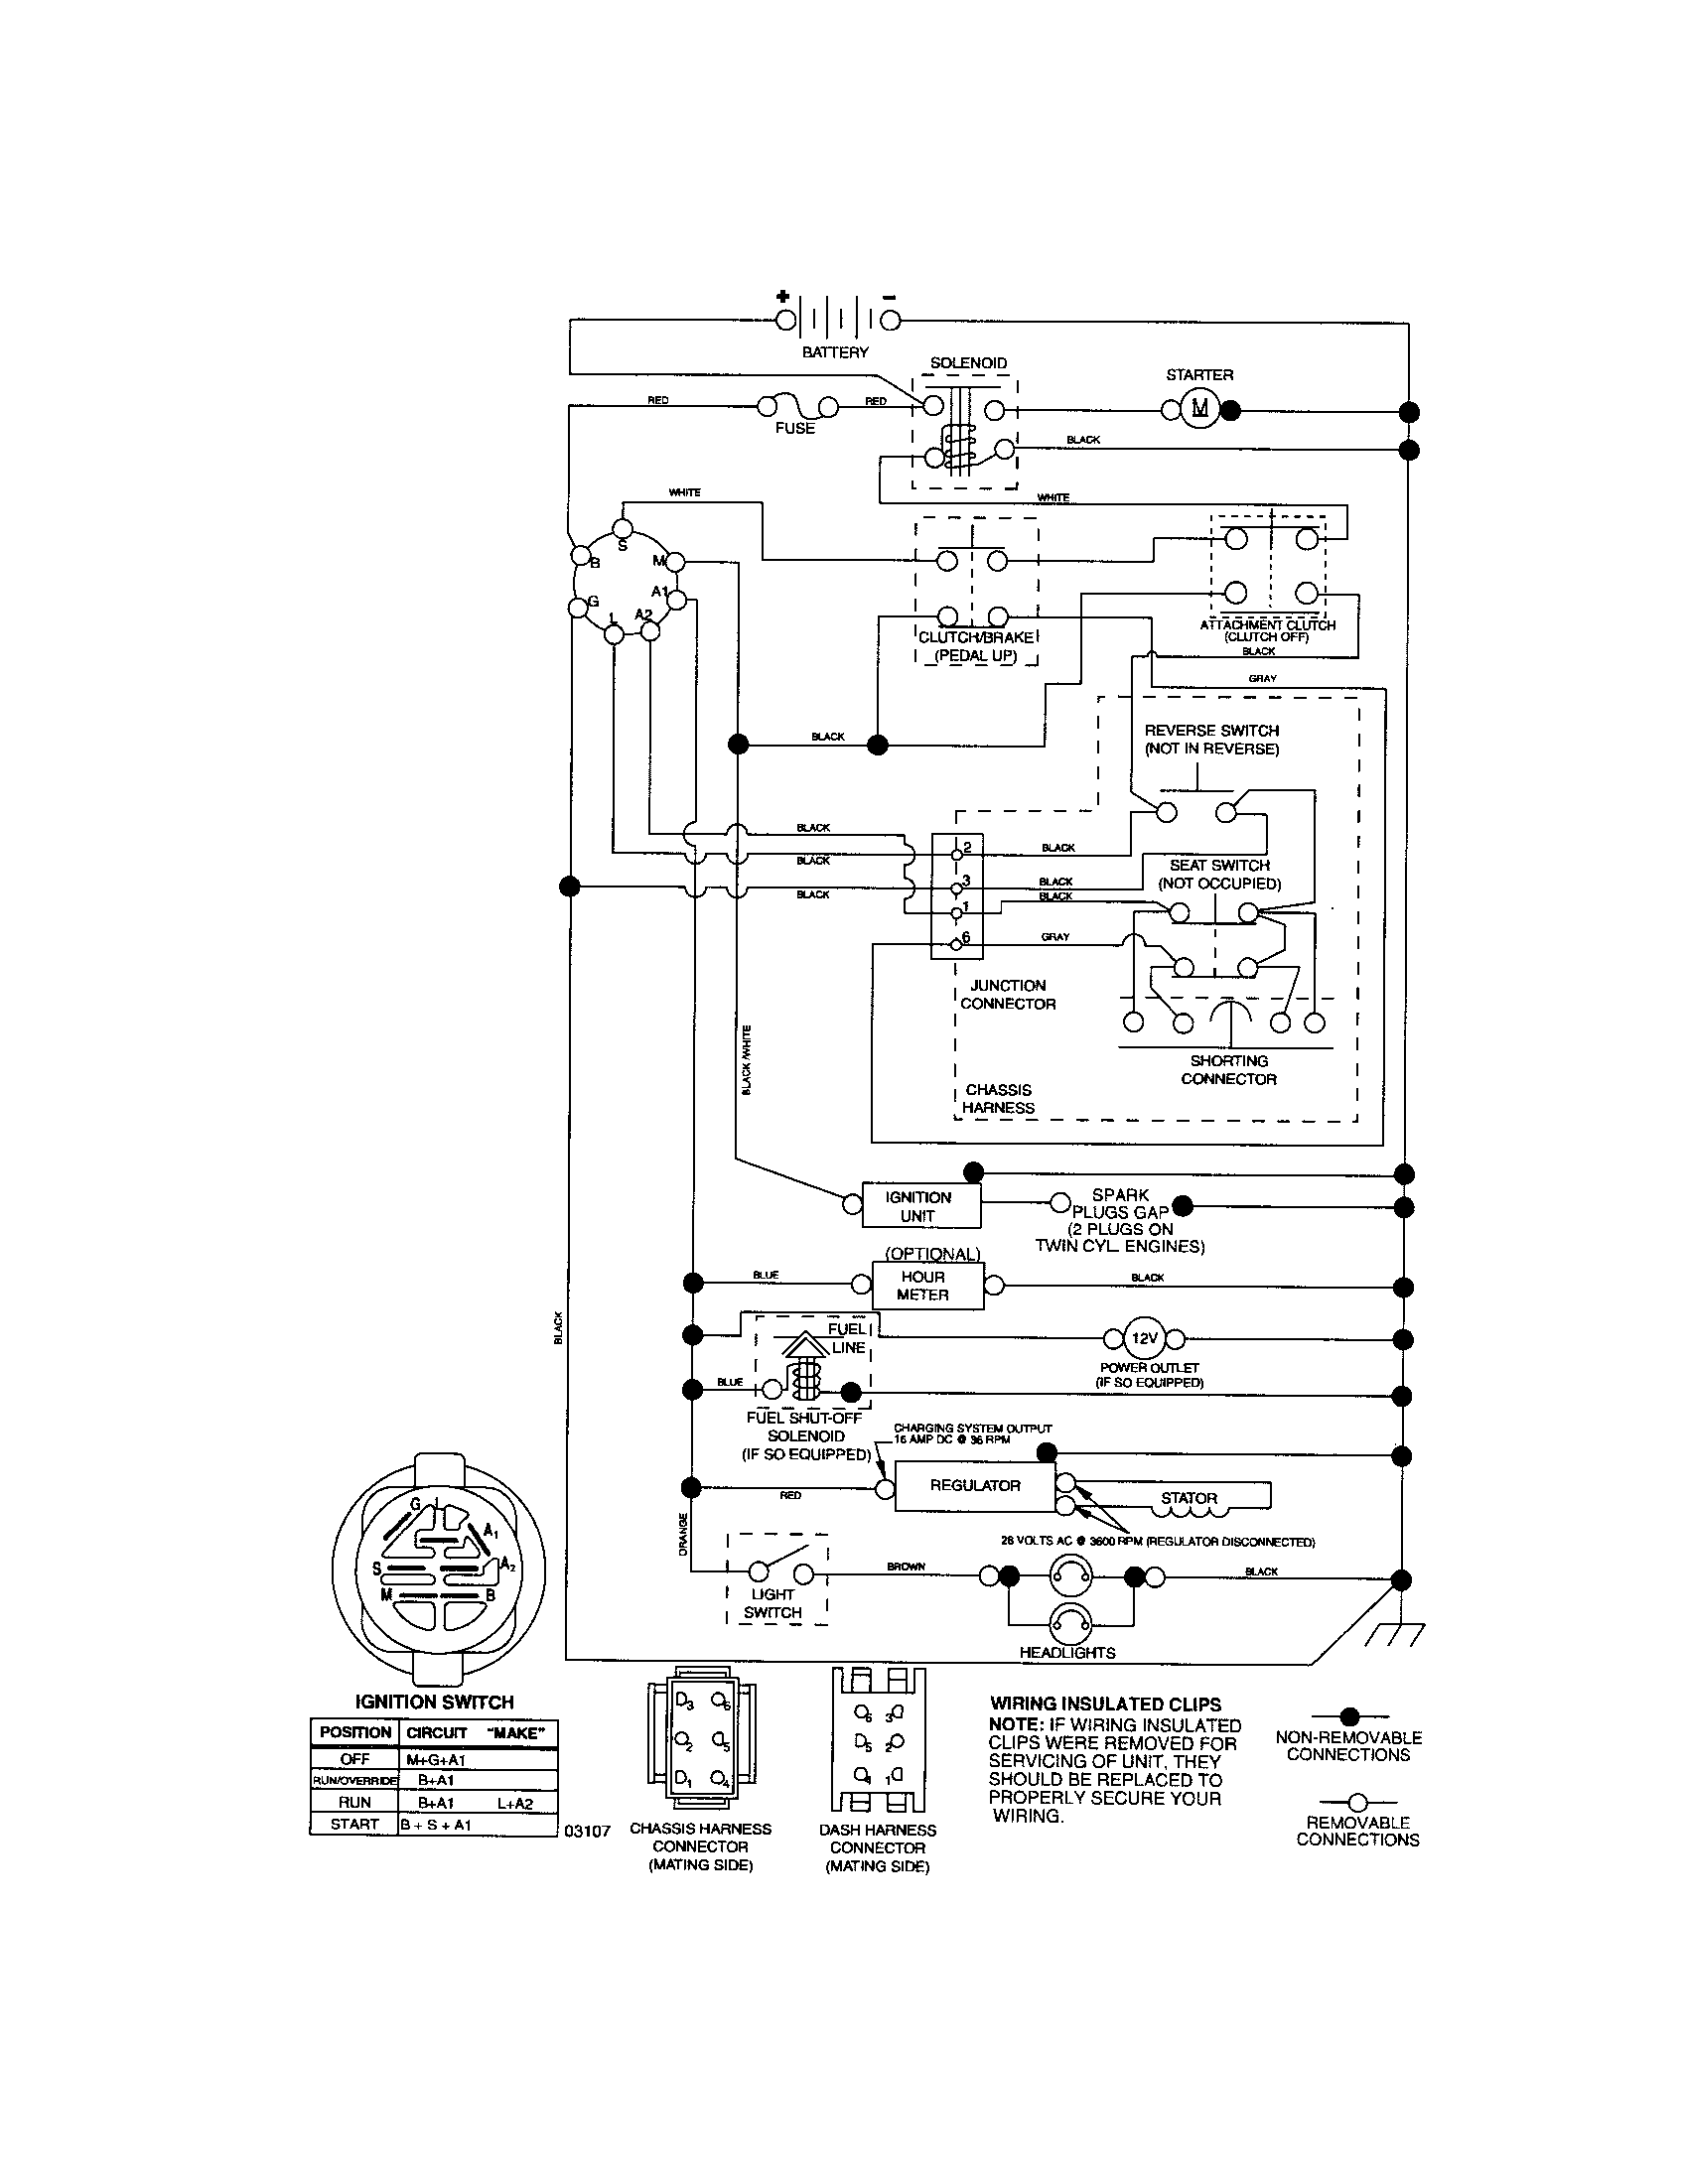 hight resolution of craftsman riding mower electrical diagram wiring diagram craftsman riding lawn mower i need one for